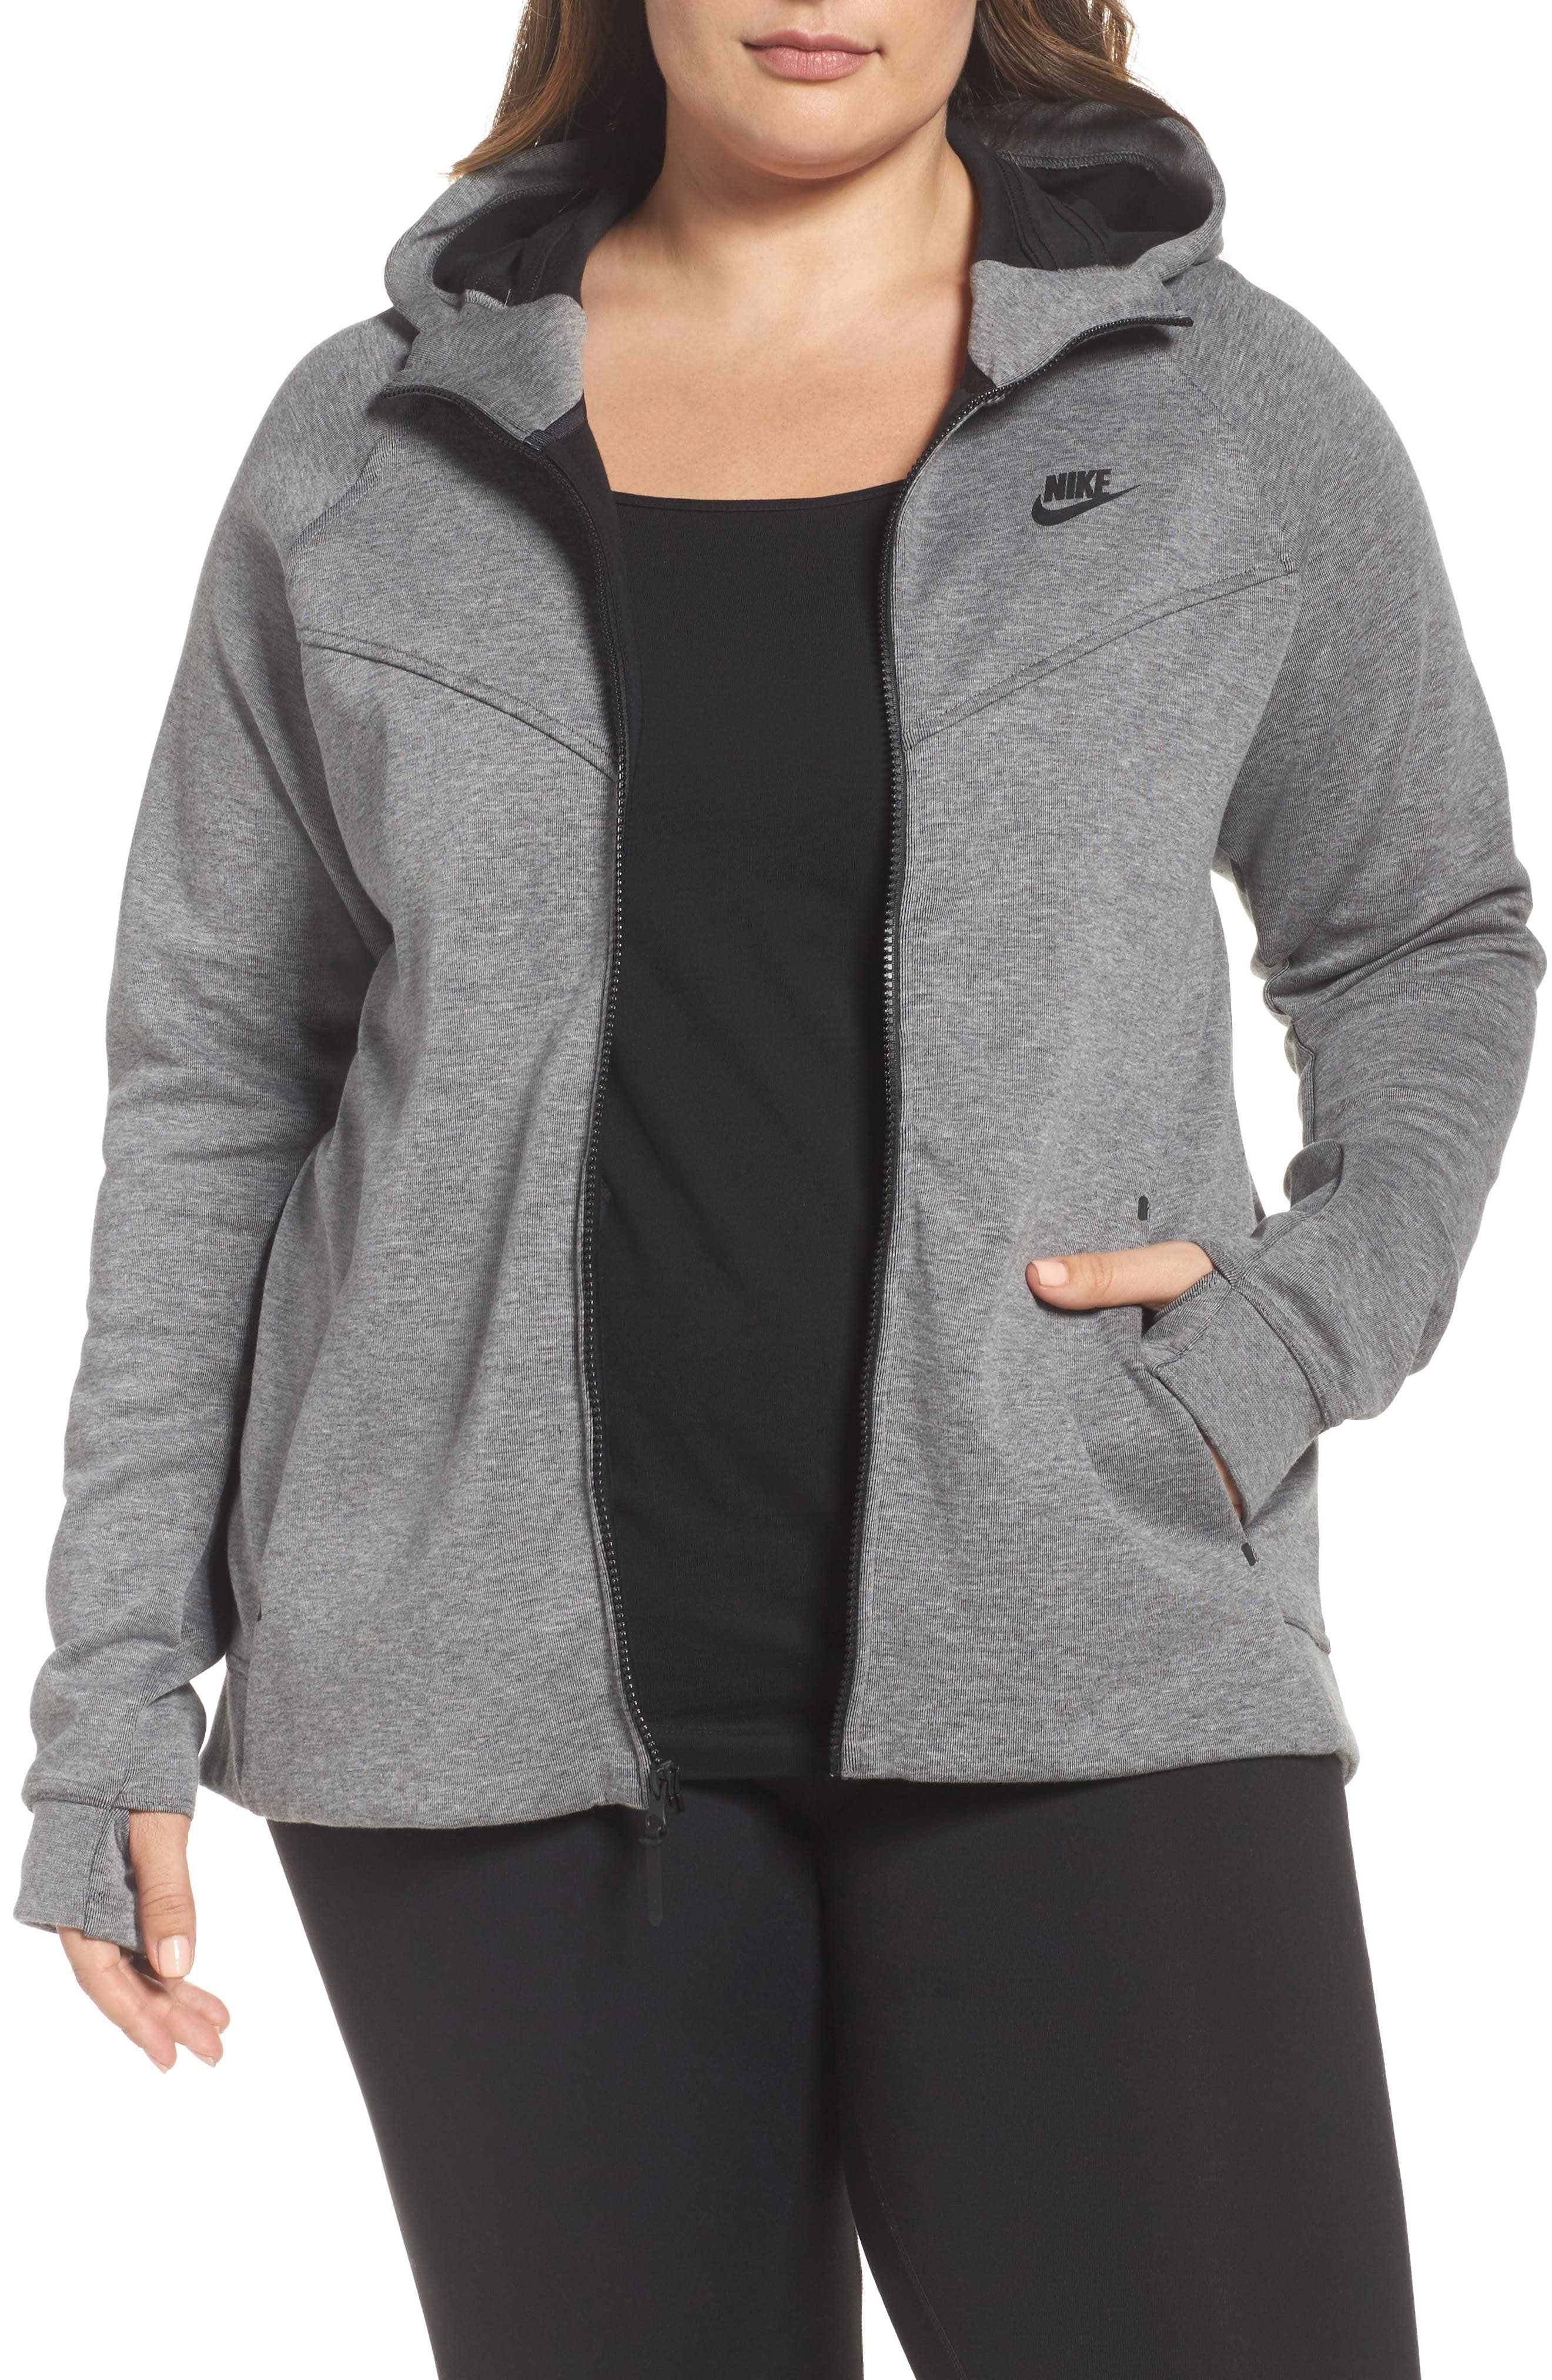 Alternate Image 1 Selected - Nike Tech Fleece Hoodie (Plus Size)